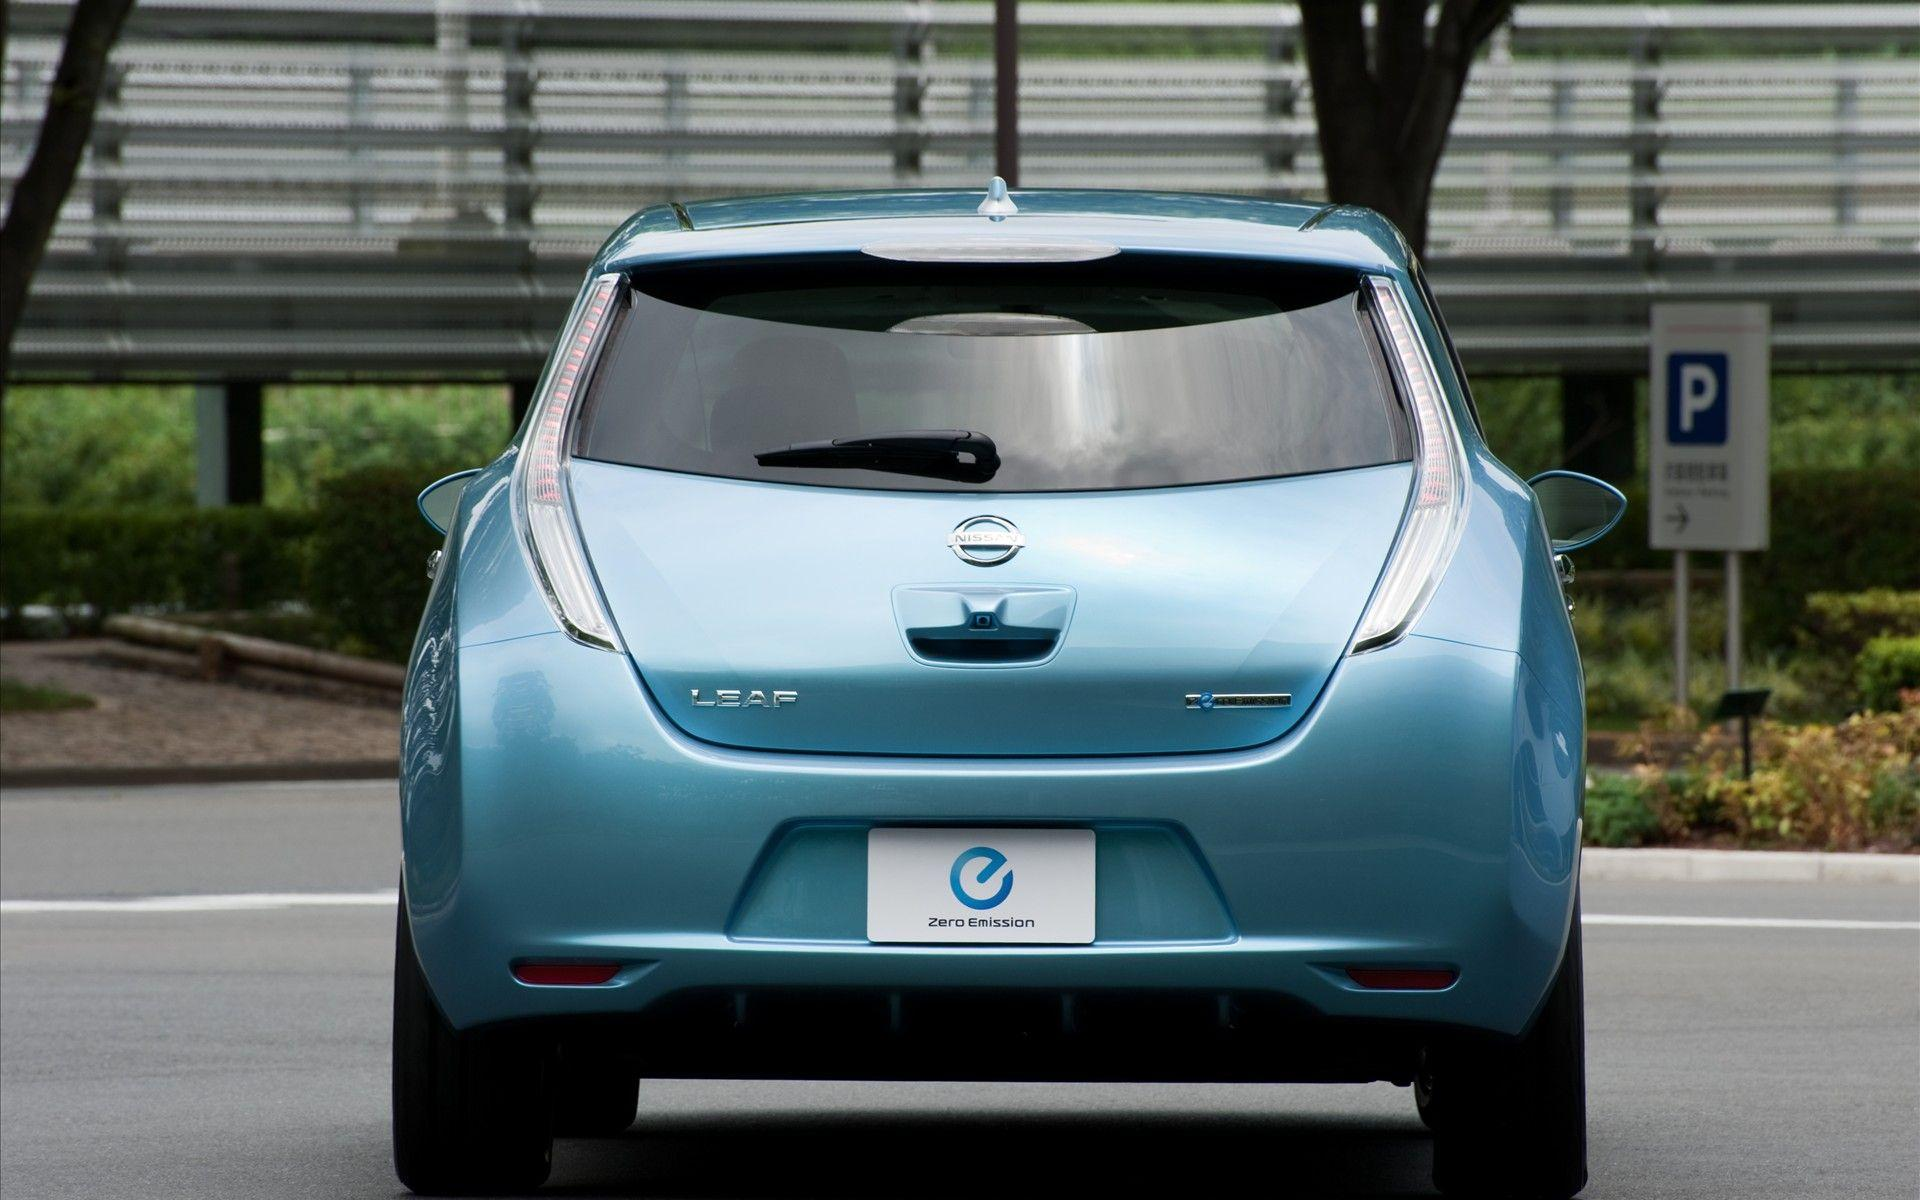 Nissan Leaf | Free Desktop Wallpapers for Widescreen, HD and Mobile